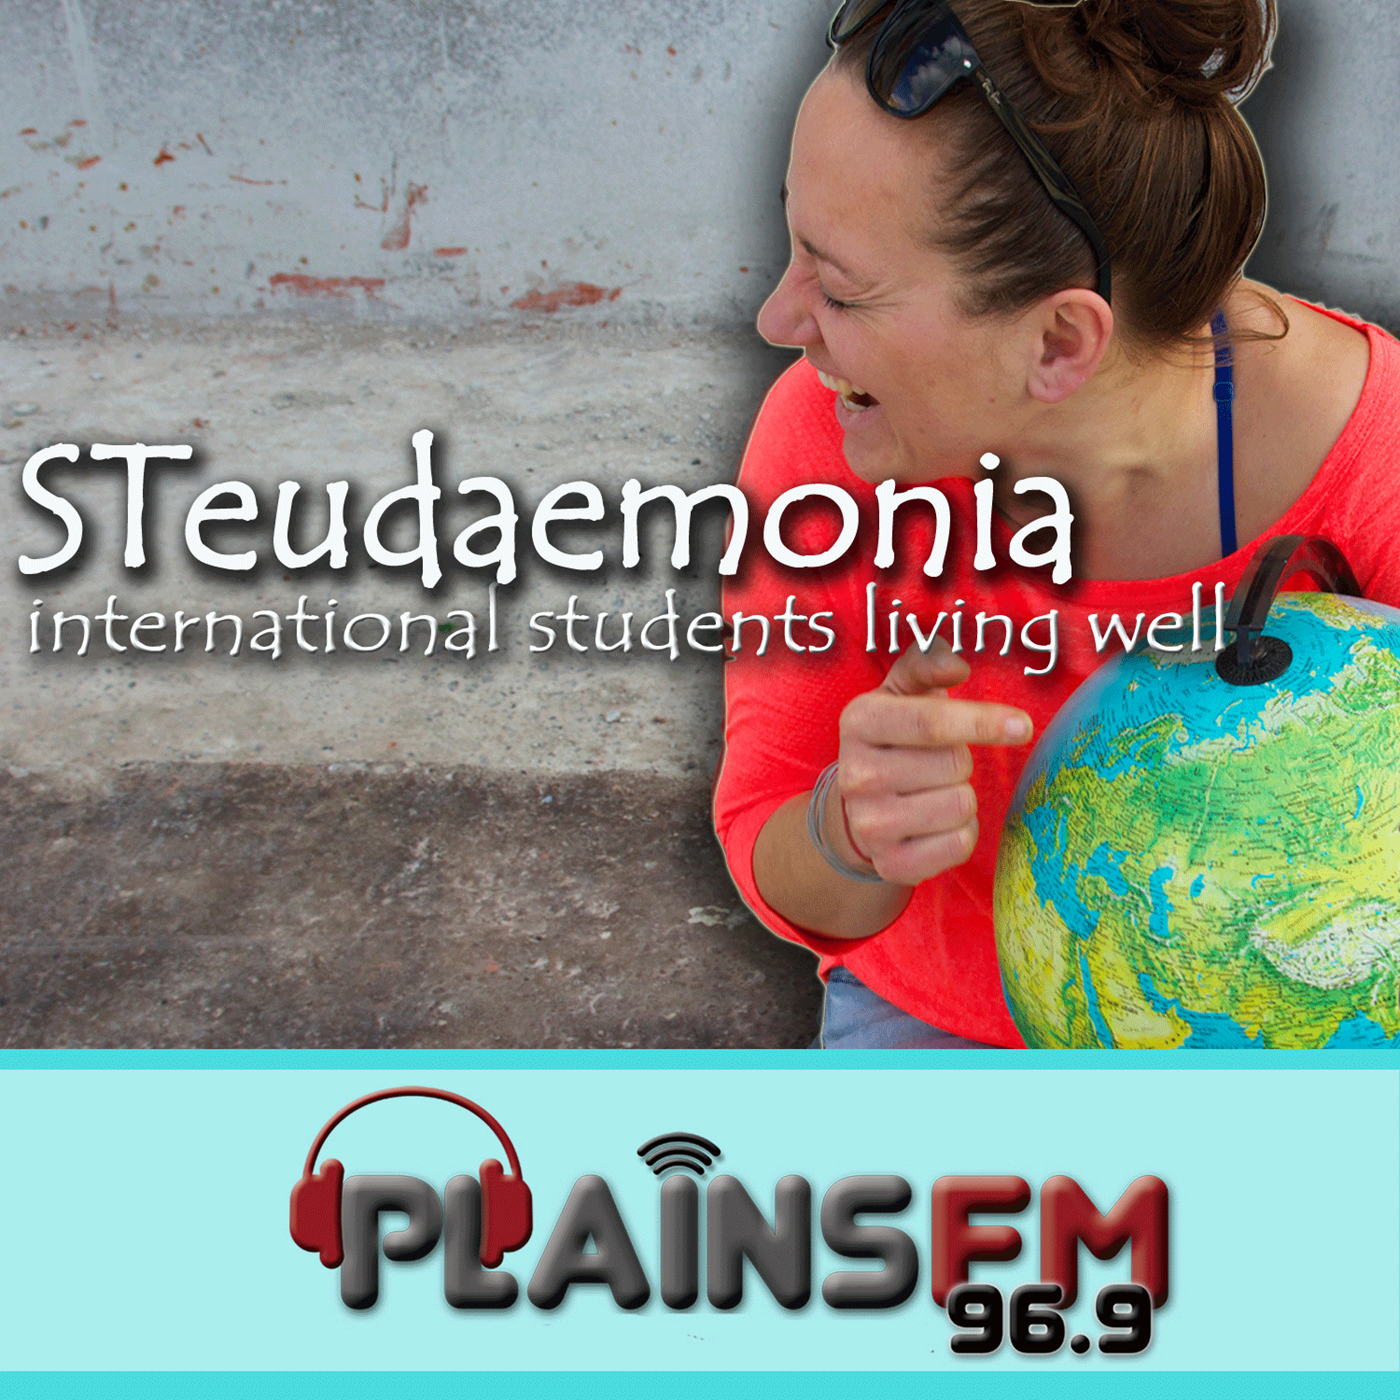 STeudaemonia - International Students Living Well-21-07-2019 - Radio Rangers - VOLUNESIA - The Power of Giving.